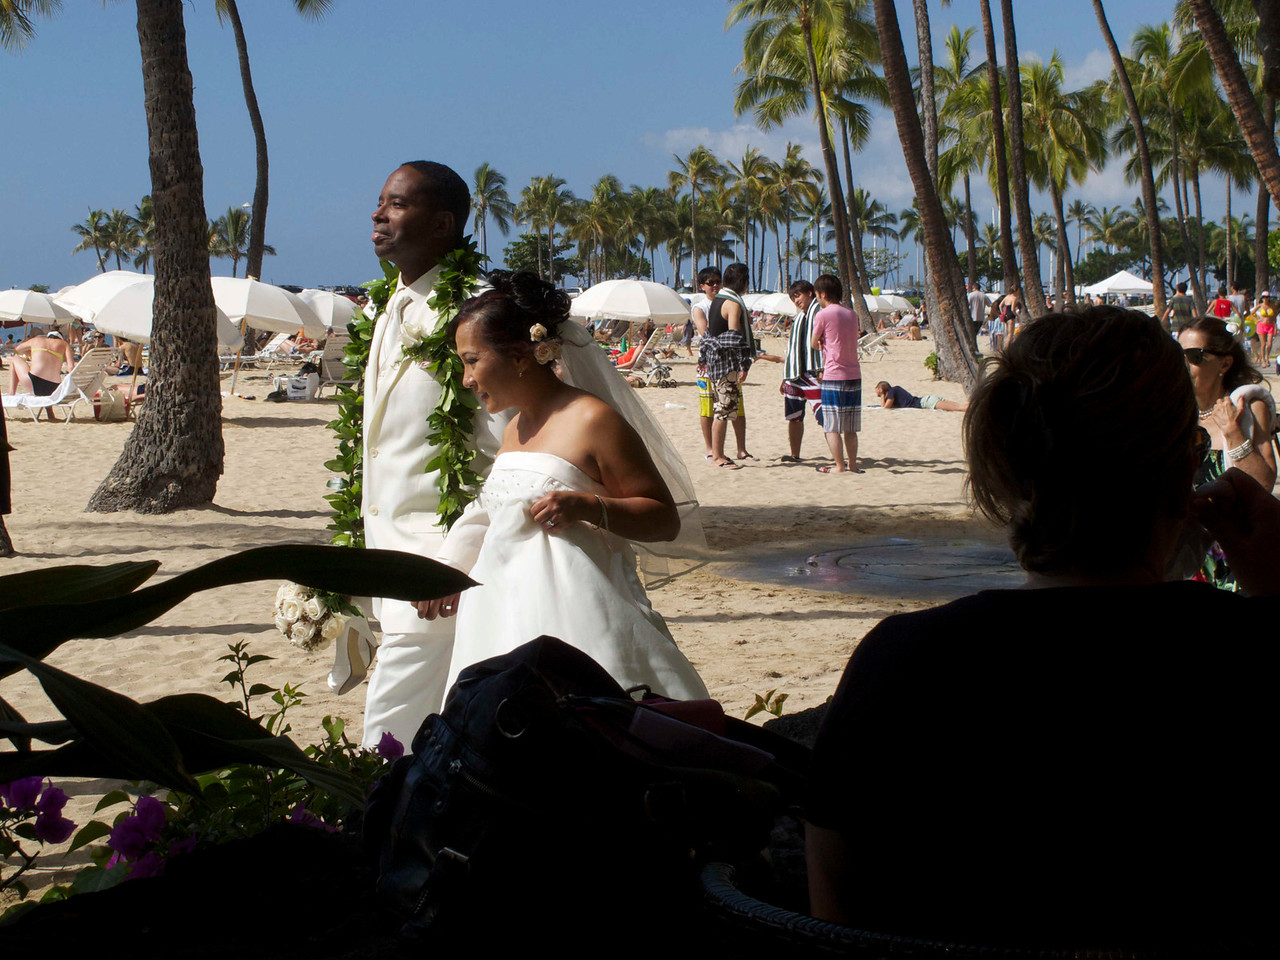 This couple was on their way to pose for their wedding portrait. We saw them from our beachside restaurant.